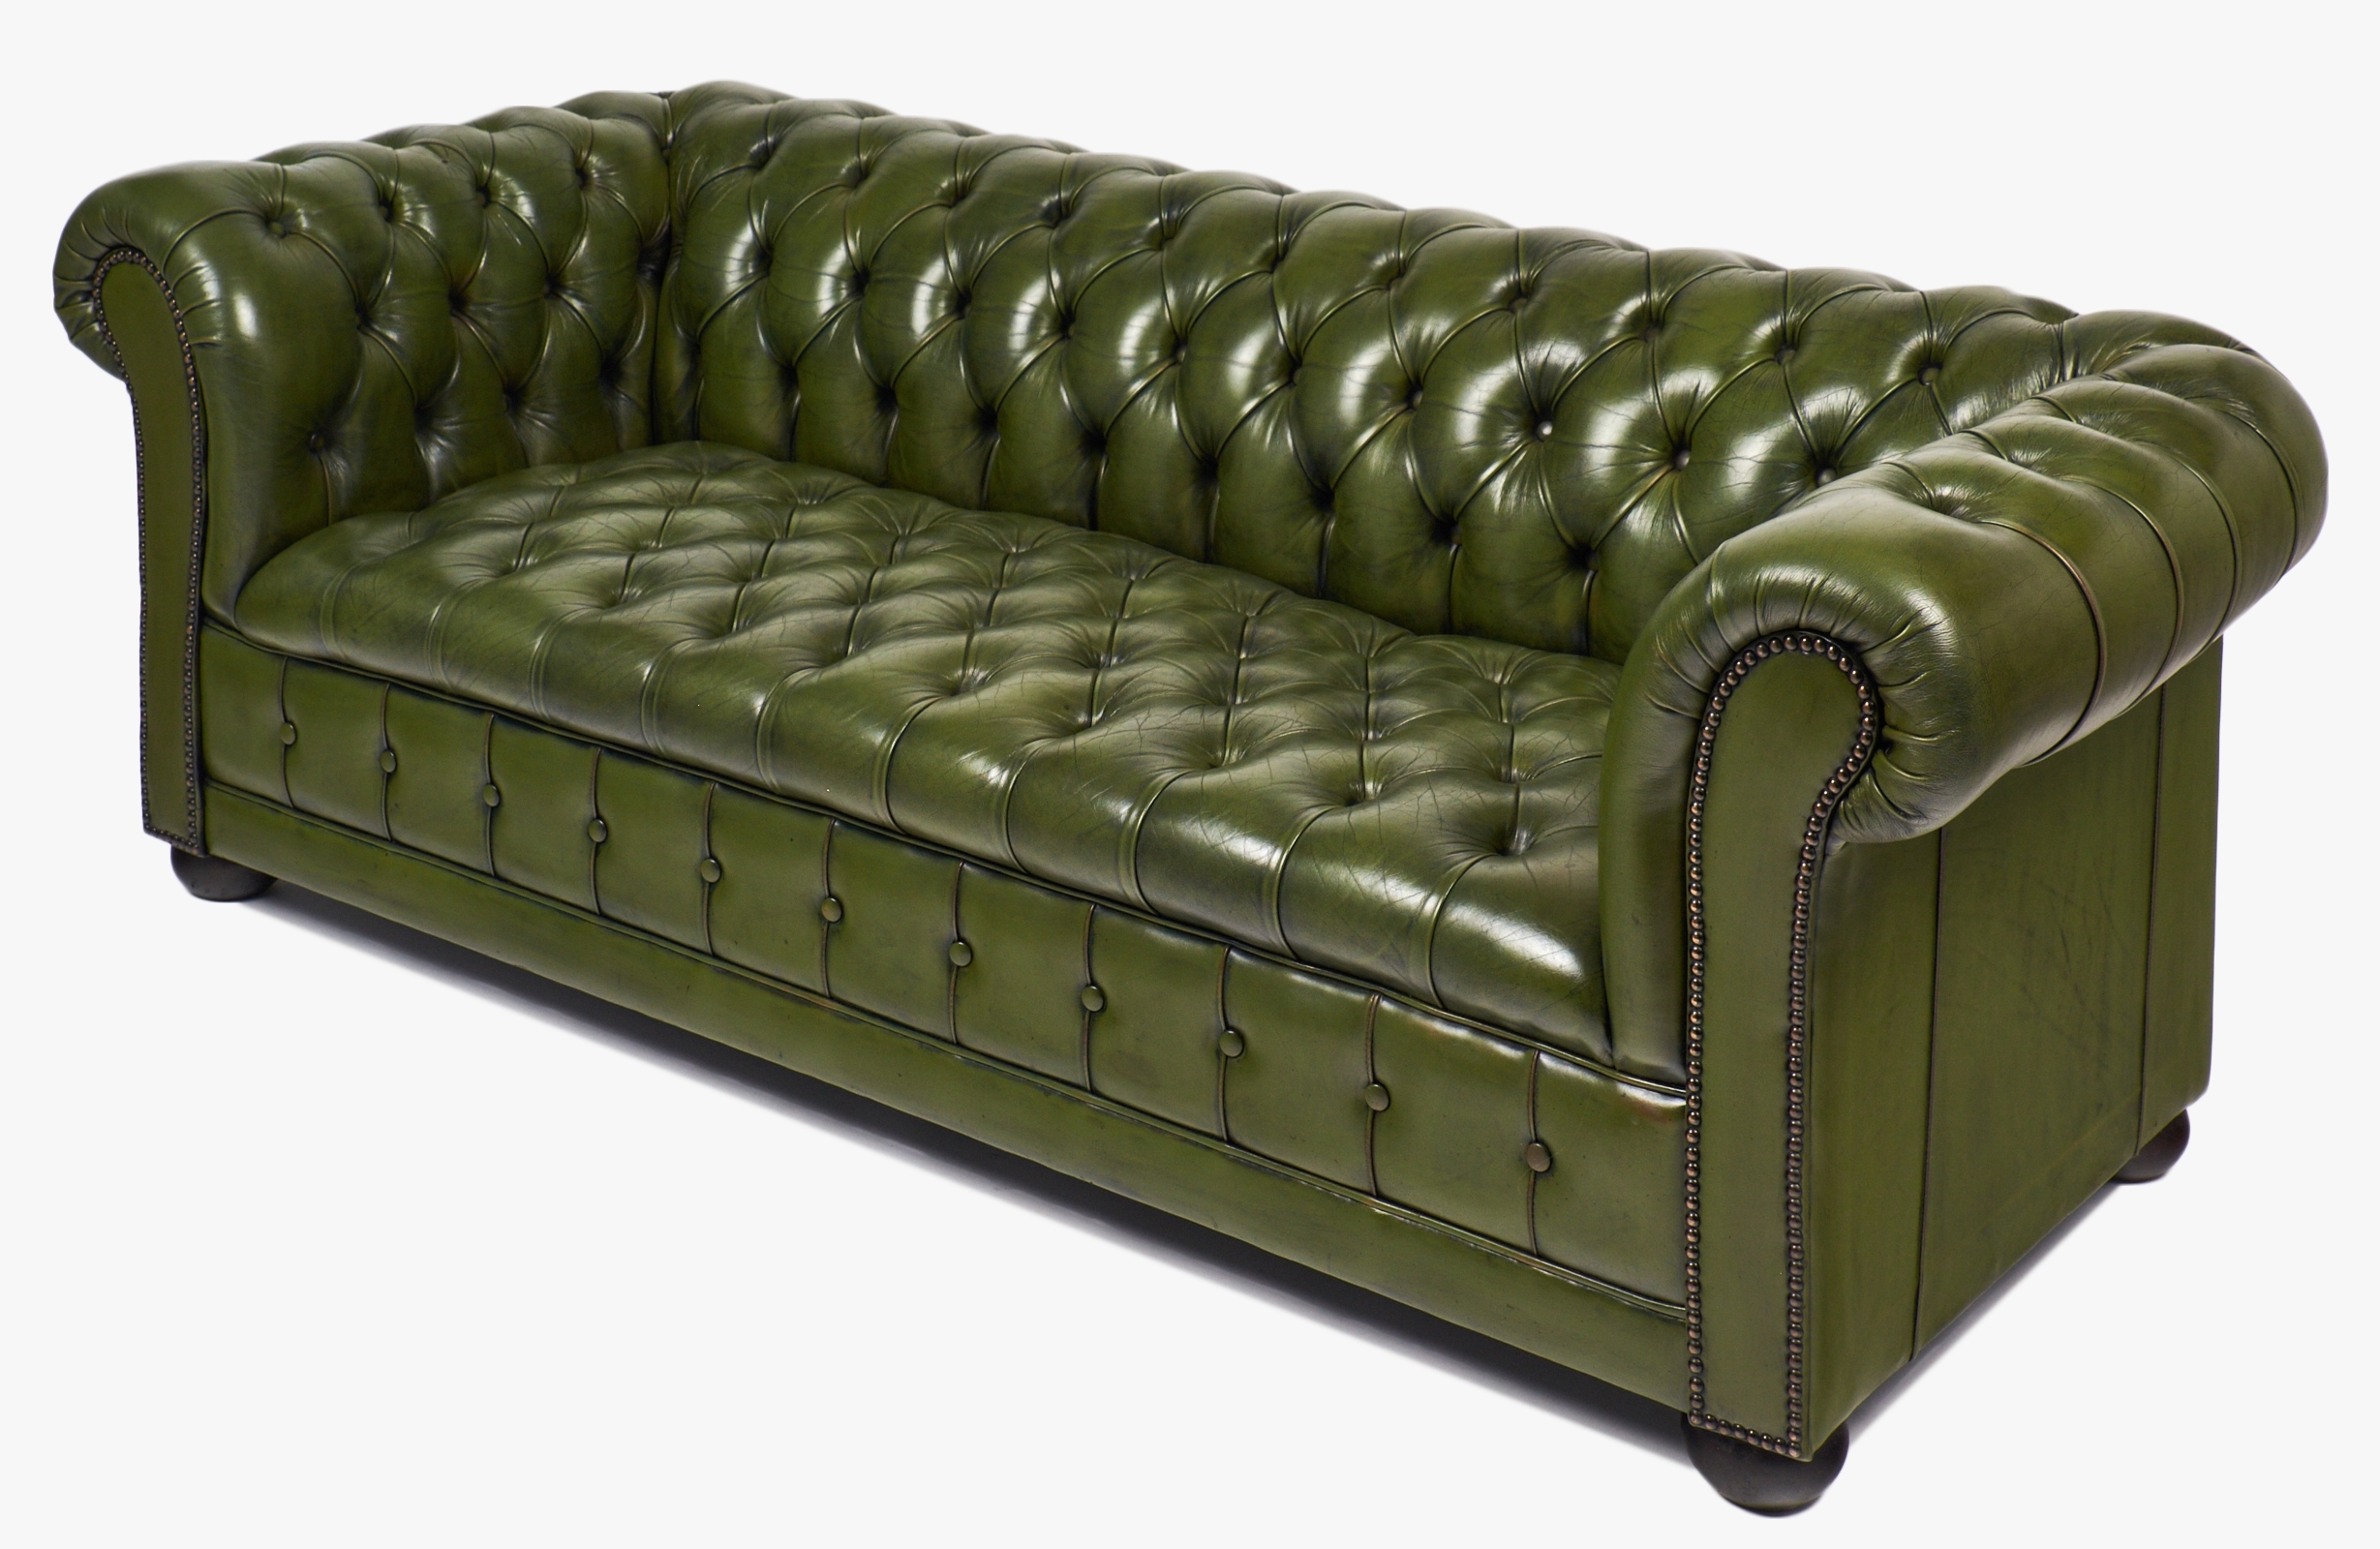 Vintage Chesterfield Sofas Throughout Most Recent Vintage Green Leather Chesterfield Sofa – Jean Marc Fray (View 13 of 20)